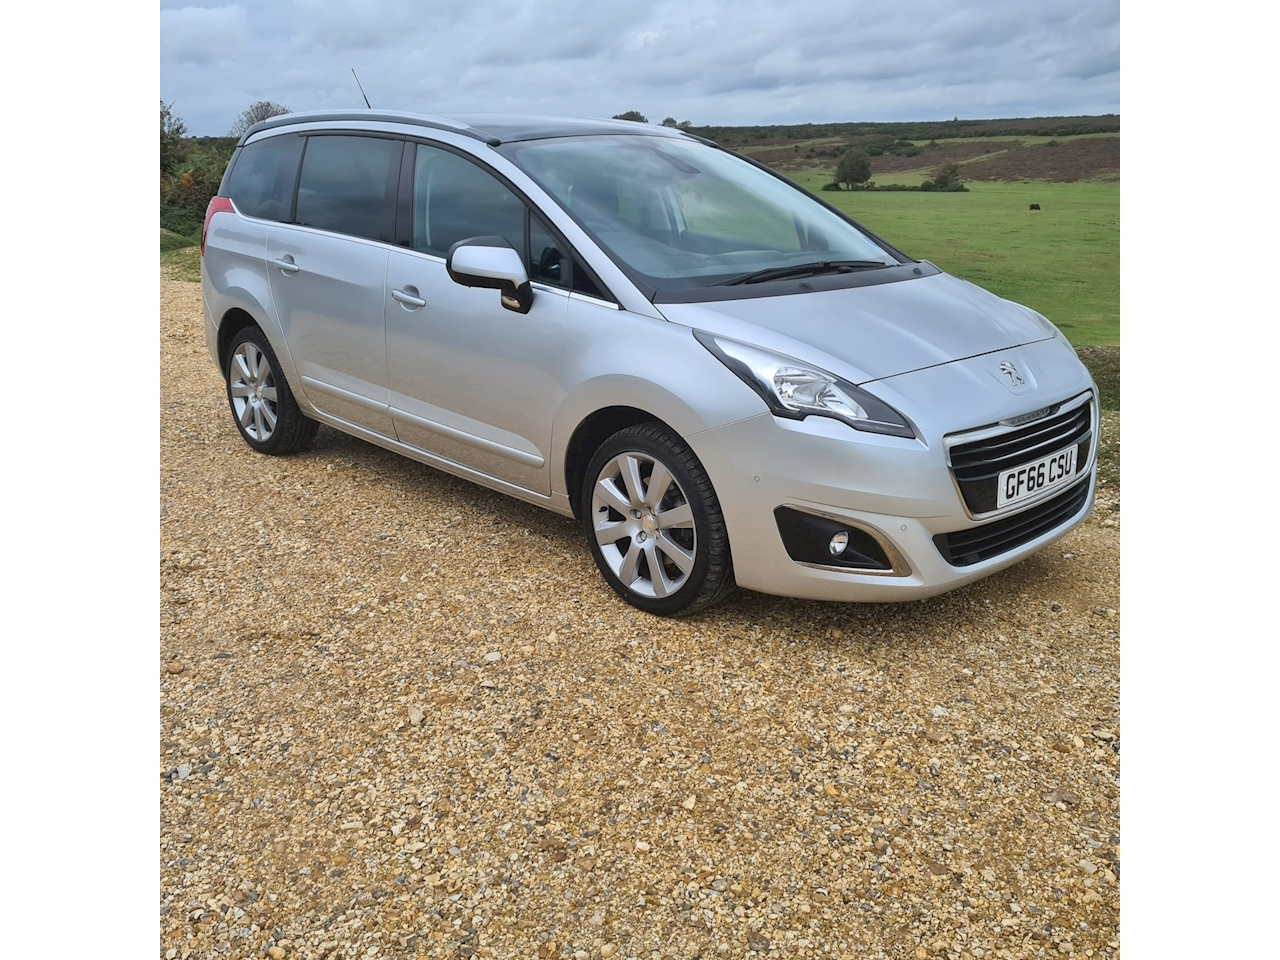 Peugeot 5008 Allure MPV 1.6 Manual Diesel